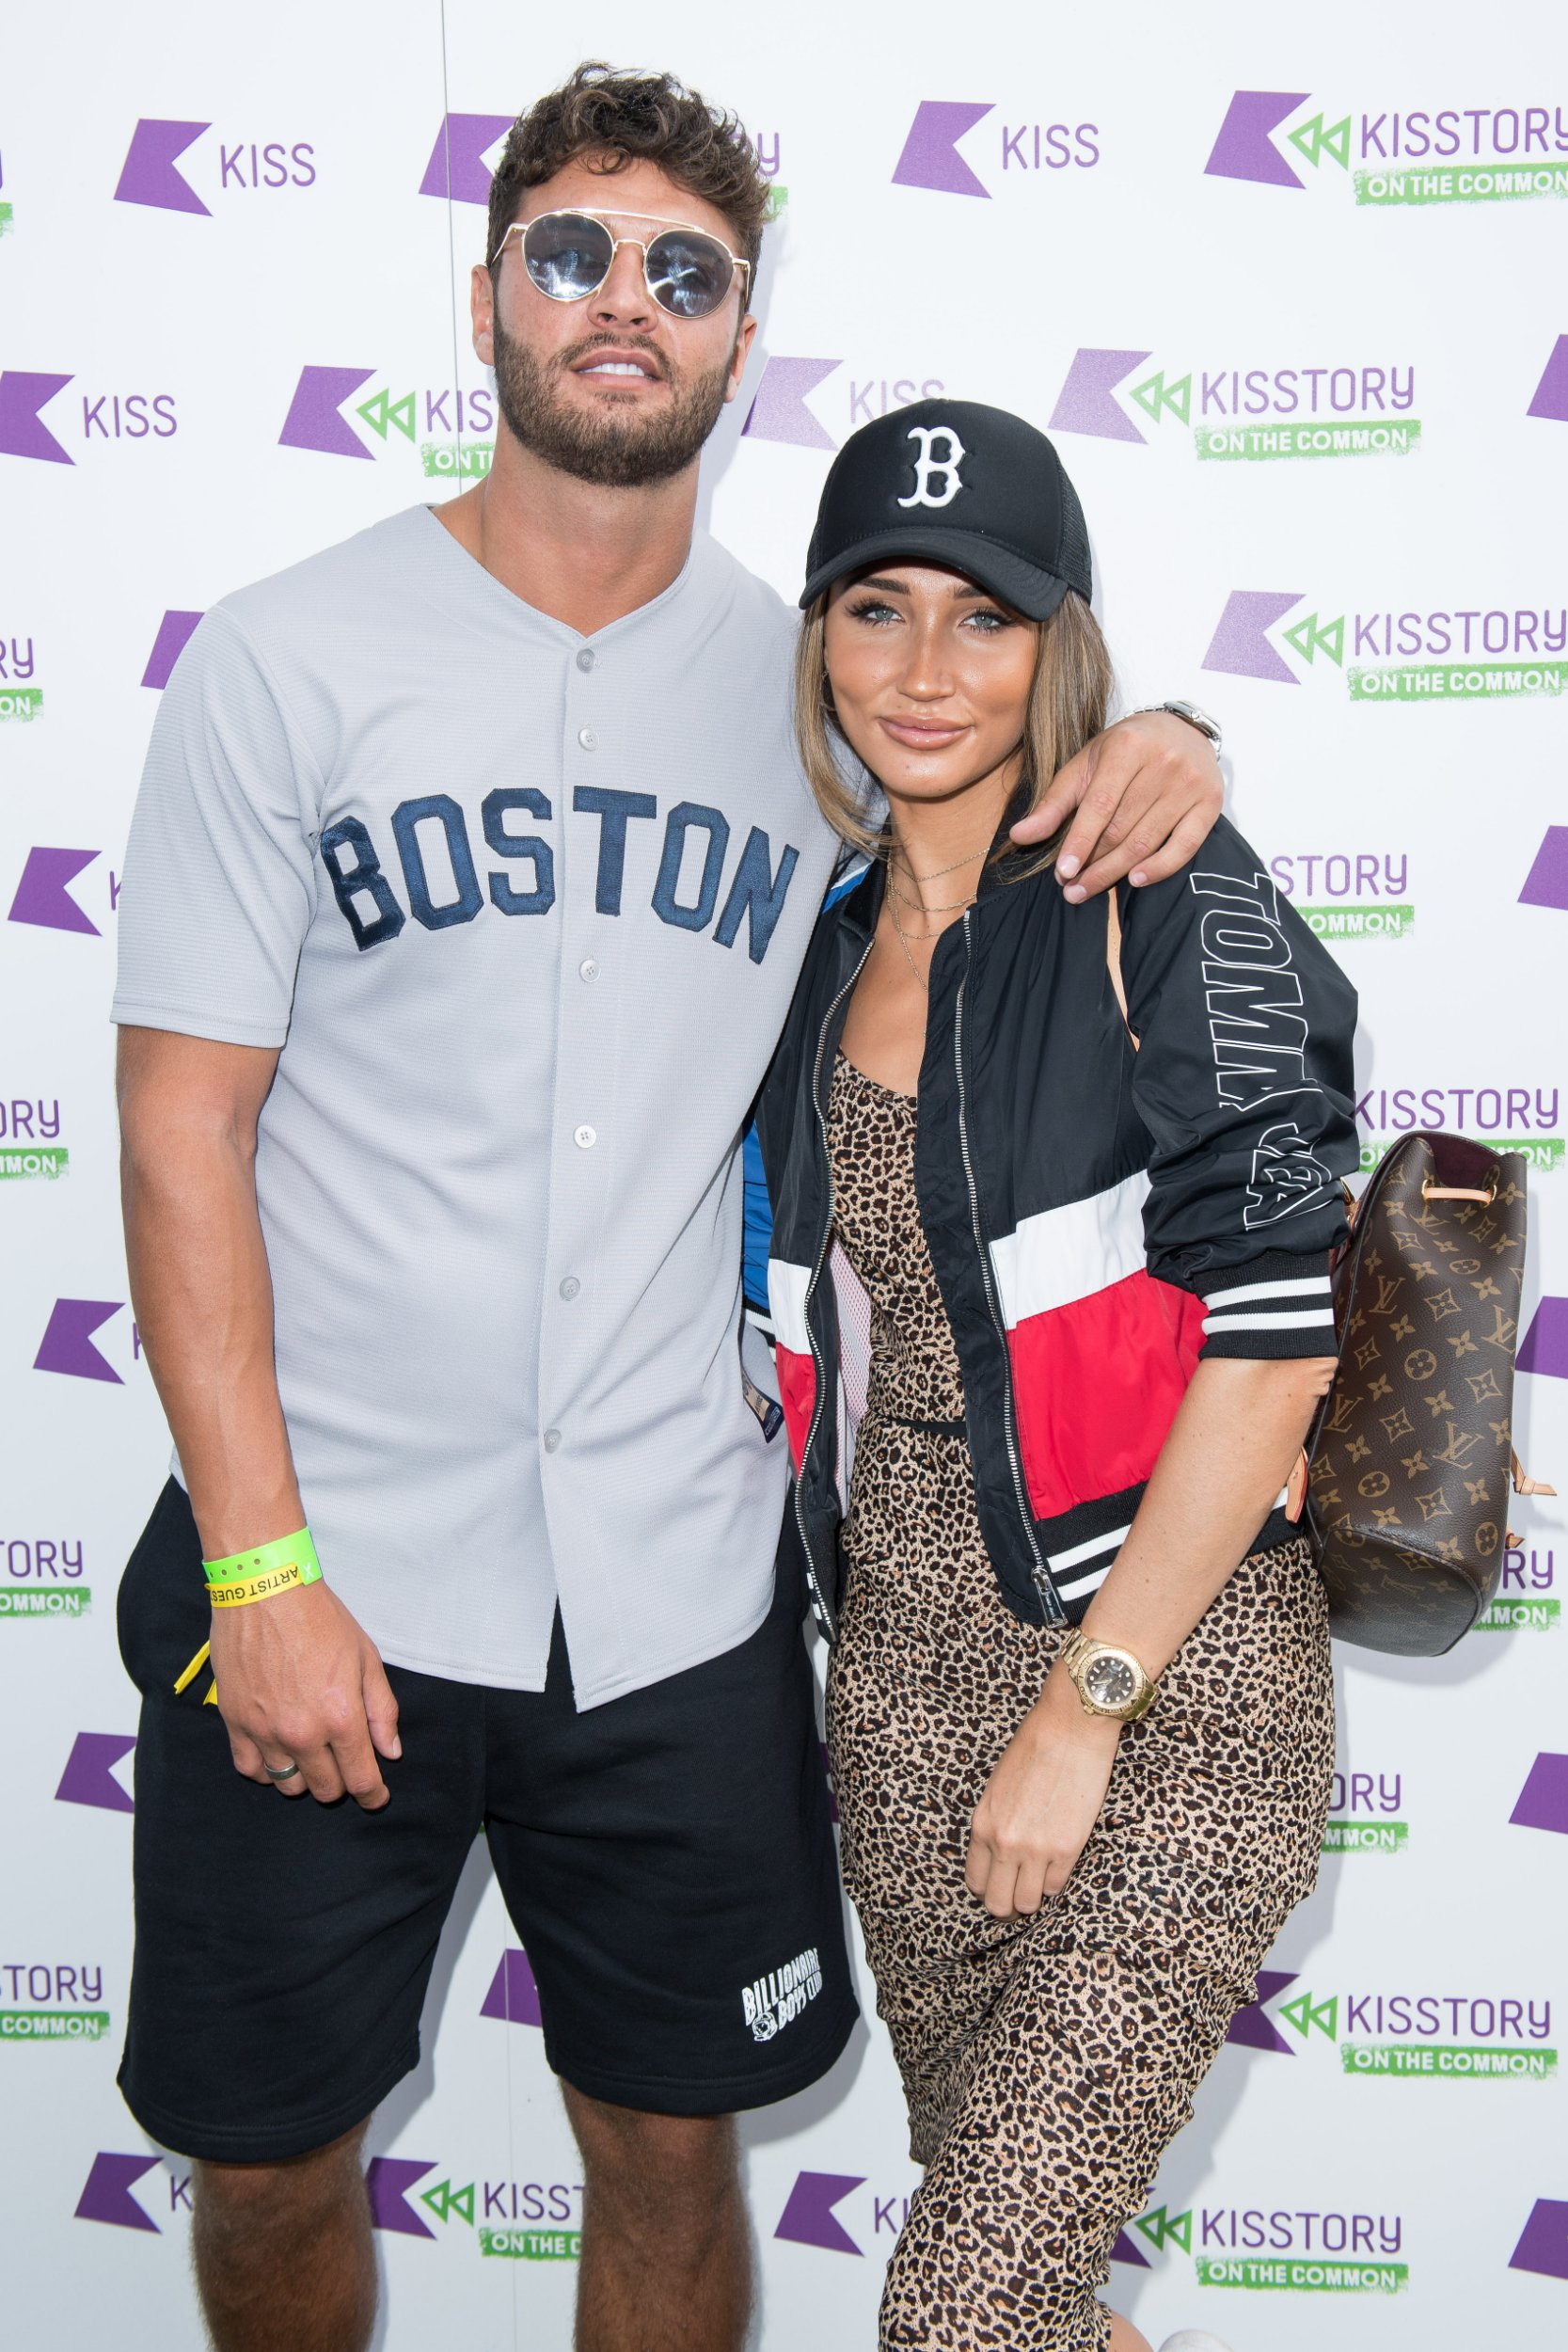 LONDON, ENGLAND - JULY 21: (L-R) Mike Thalassitis and Megan McKenna attend Kisstory On The Common 2018 at Streatham Common on July 21, 2018 in London, England. (Photo by Jeff Spicer/Getty Images)